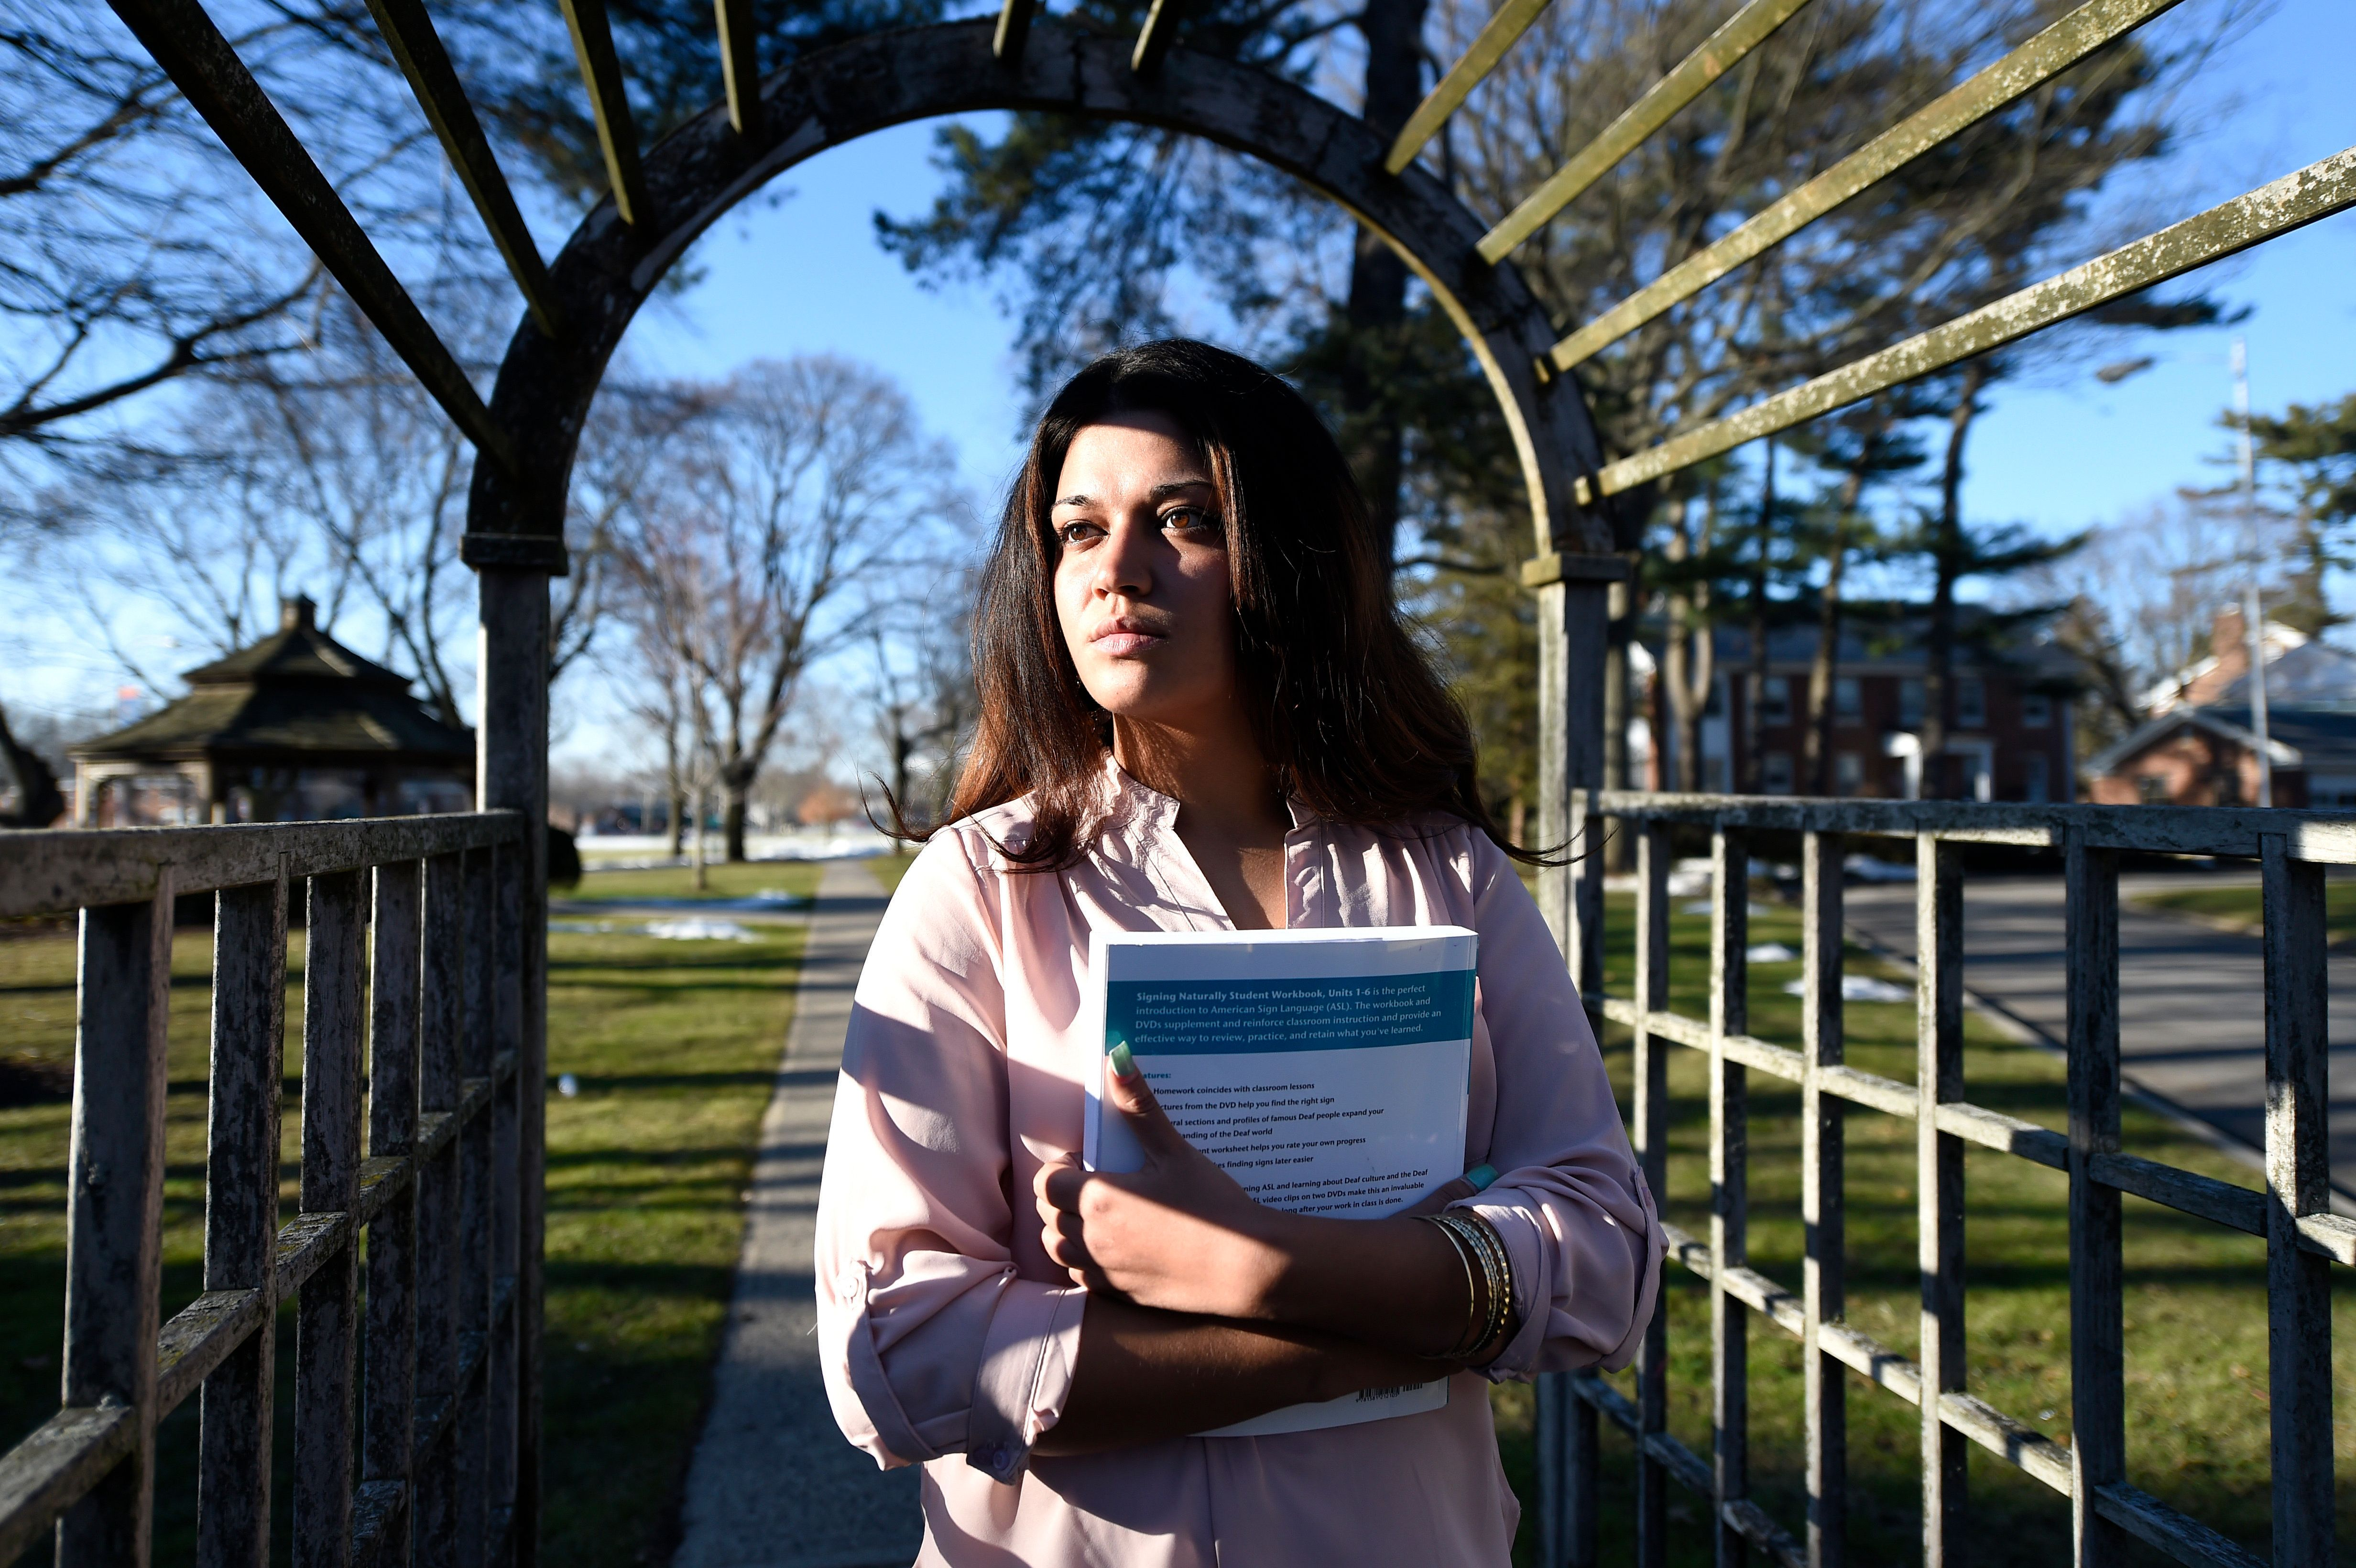 """FILE - In this Feb. 2, 2016, file photo, Naila Amin, 26, holds a book from one of the classes she was taking at Nassau Community College in Garden City, N.Y. According to data provided to The Associated Press, the U.S. approved thousands of requests by men to bring child and teenage brides from another country. """"My passport ruined my life,"""" said Naila Amin, a dual citizen from Pakistan who grew up in New York City. She was forcibly married at 13 in Pakistan and applied for papers for her 26-year-old husband to come to the country. """"People die to come to America. I was a passport to him. They all wanted him here, and that was the way to do it."""" (AP Photo/Kathy Kmonicek)"""